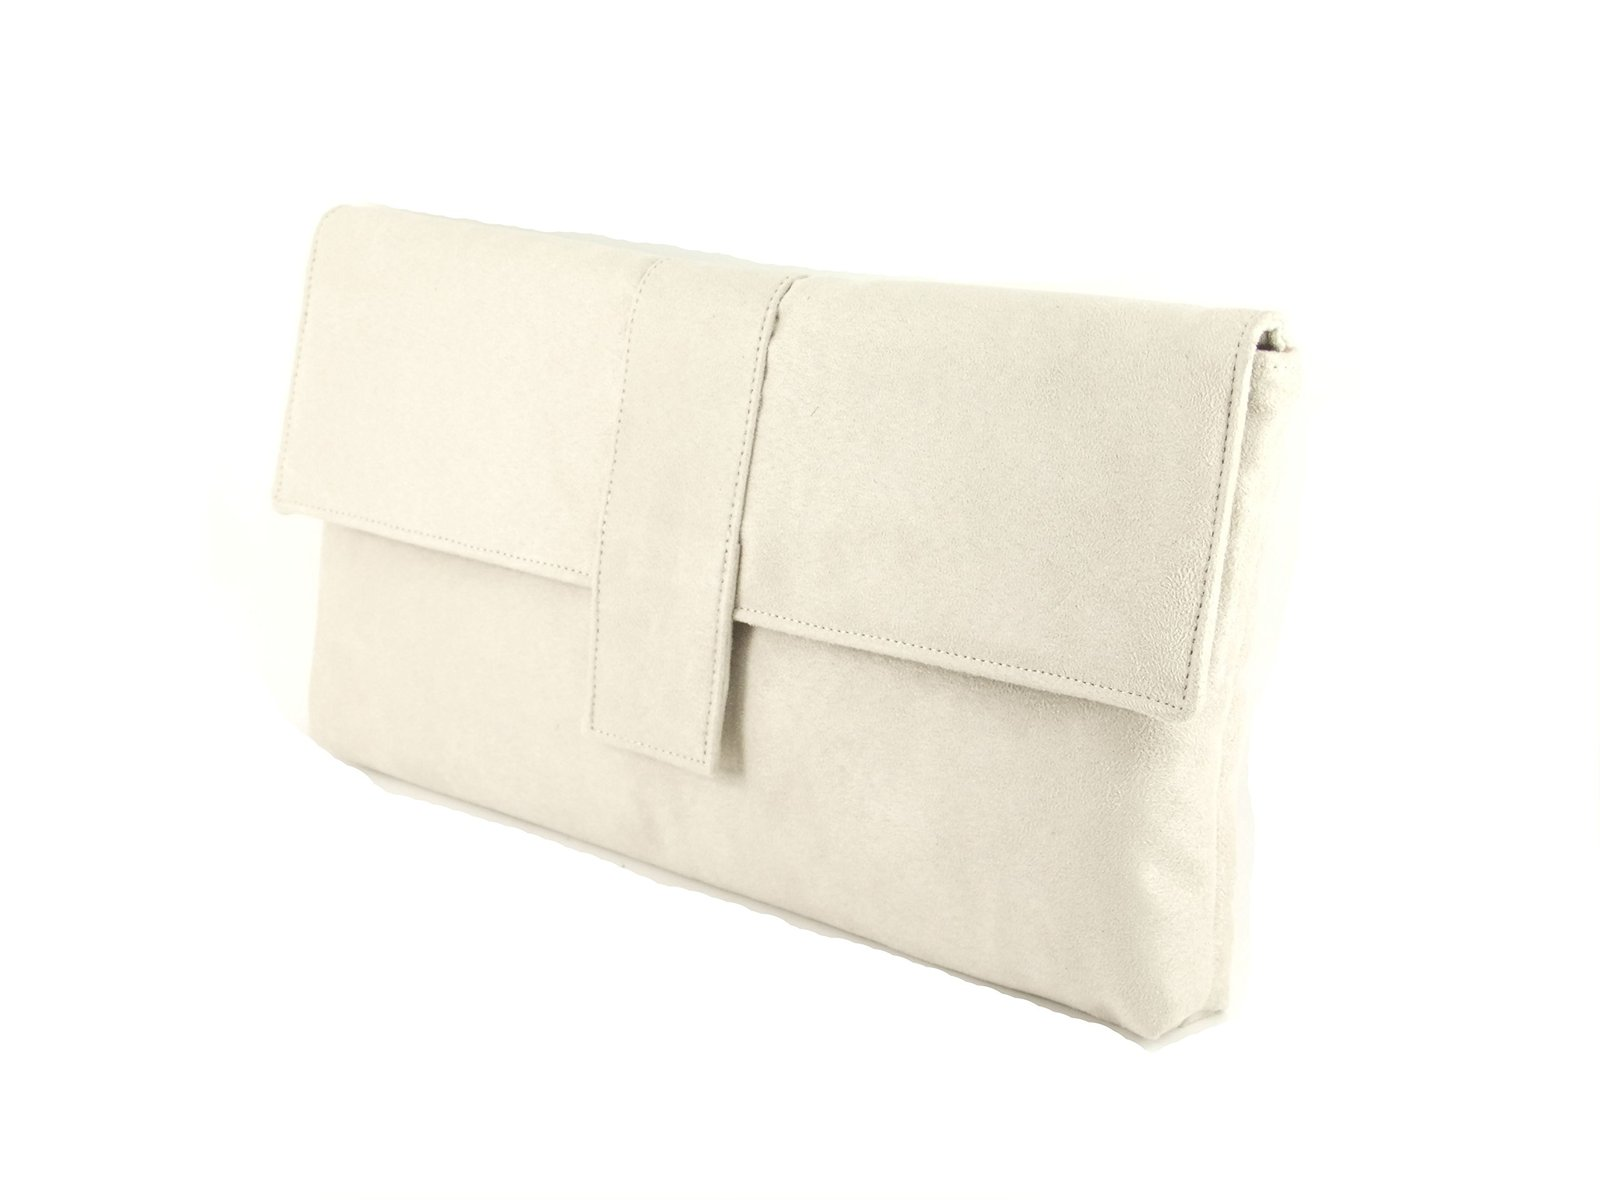 LONI Women's Synthetic Clutch Bag Suede Leather Large Ivory Cream